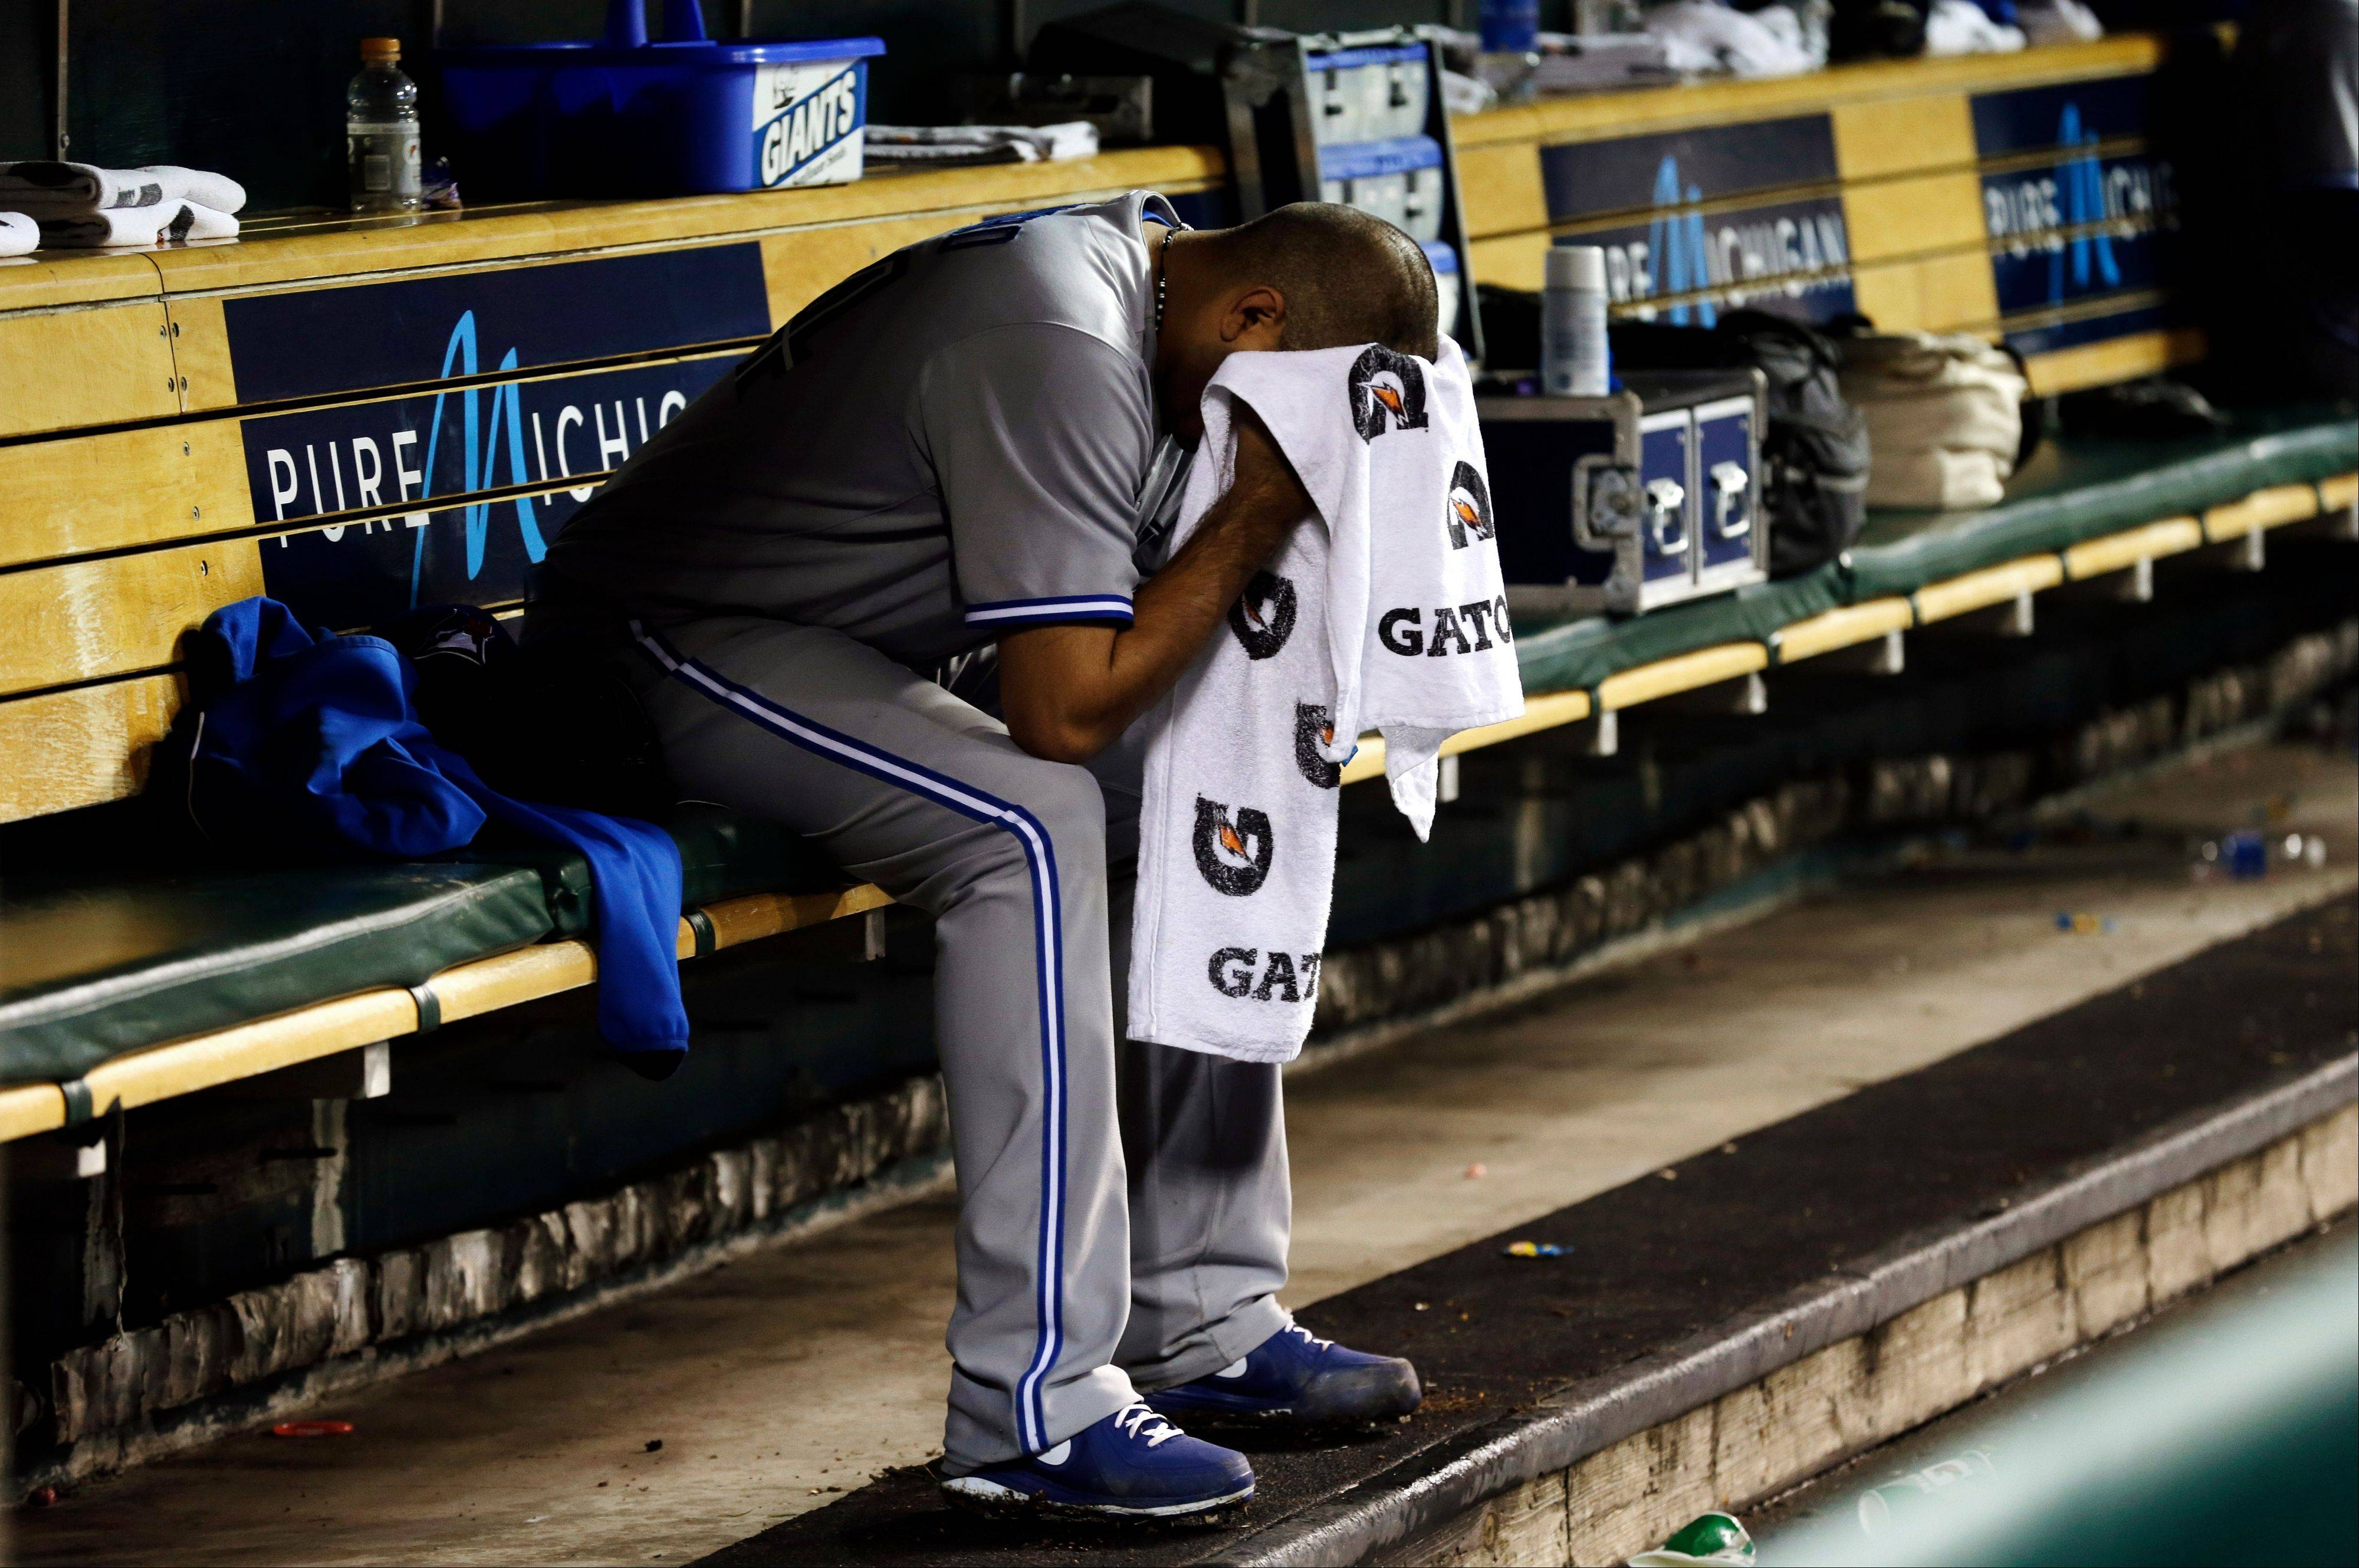 Blue Jays pitcher Ricky Romero sits on the bench after being taken out in the sixth inning Tuesday in Detroit.